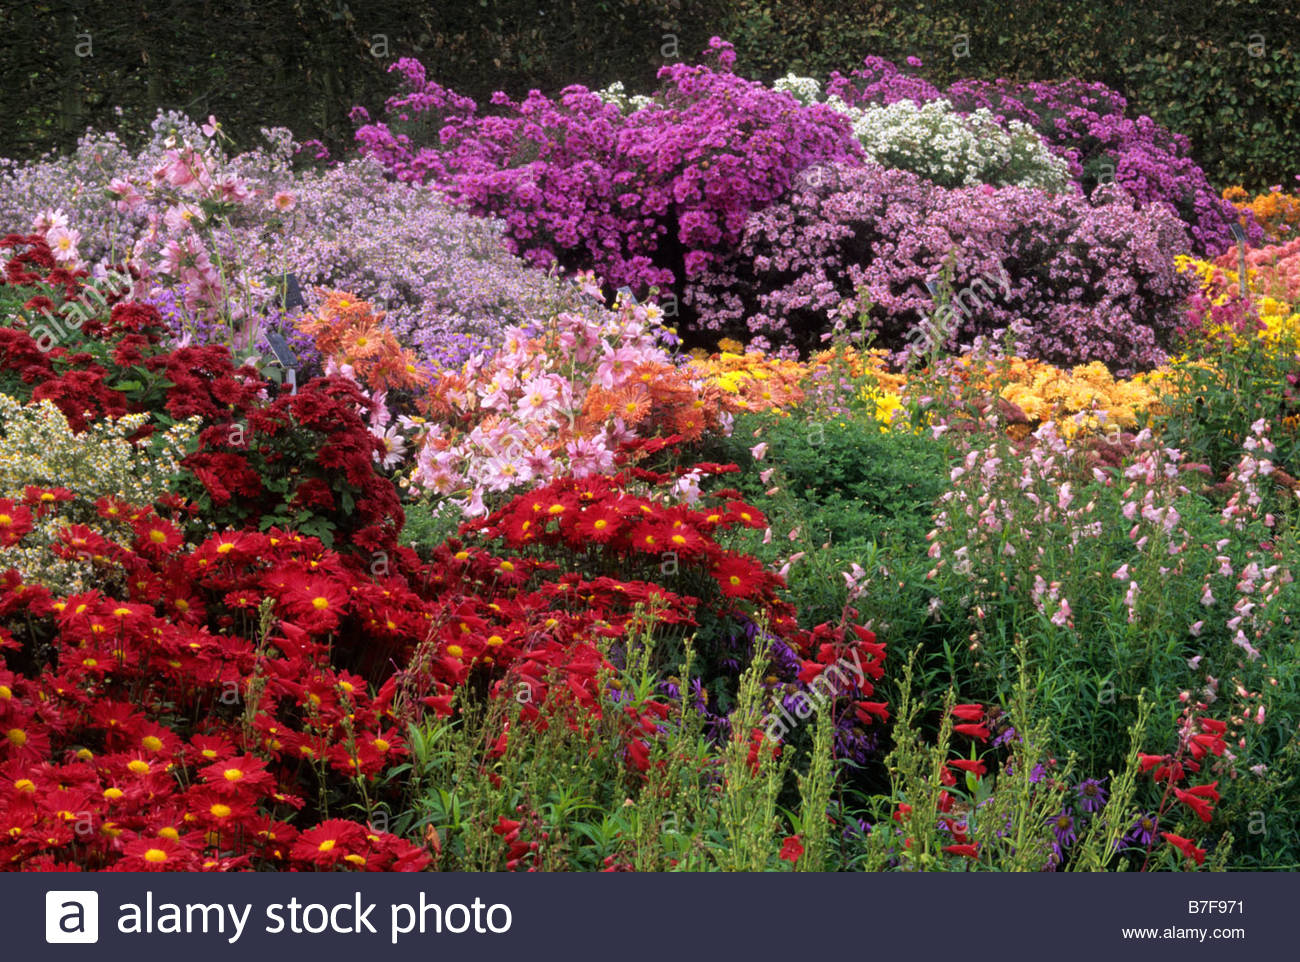 Rhs Wisley Surrey Late Summer Autumn Perennial Border With